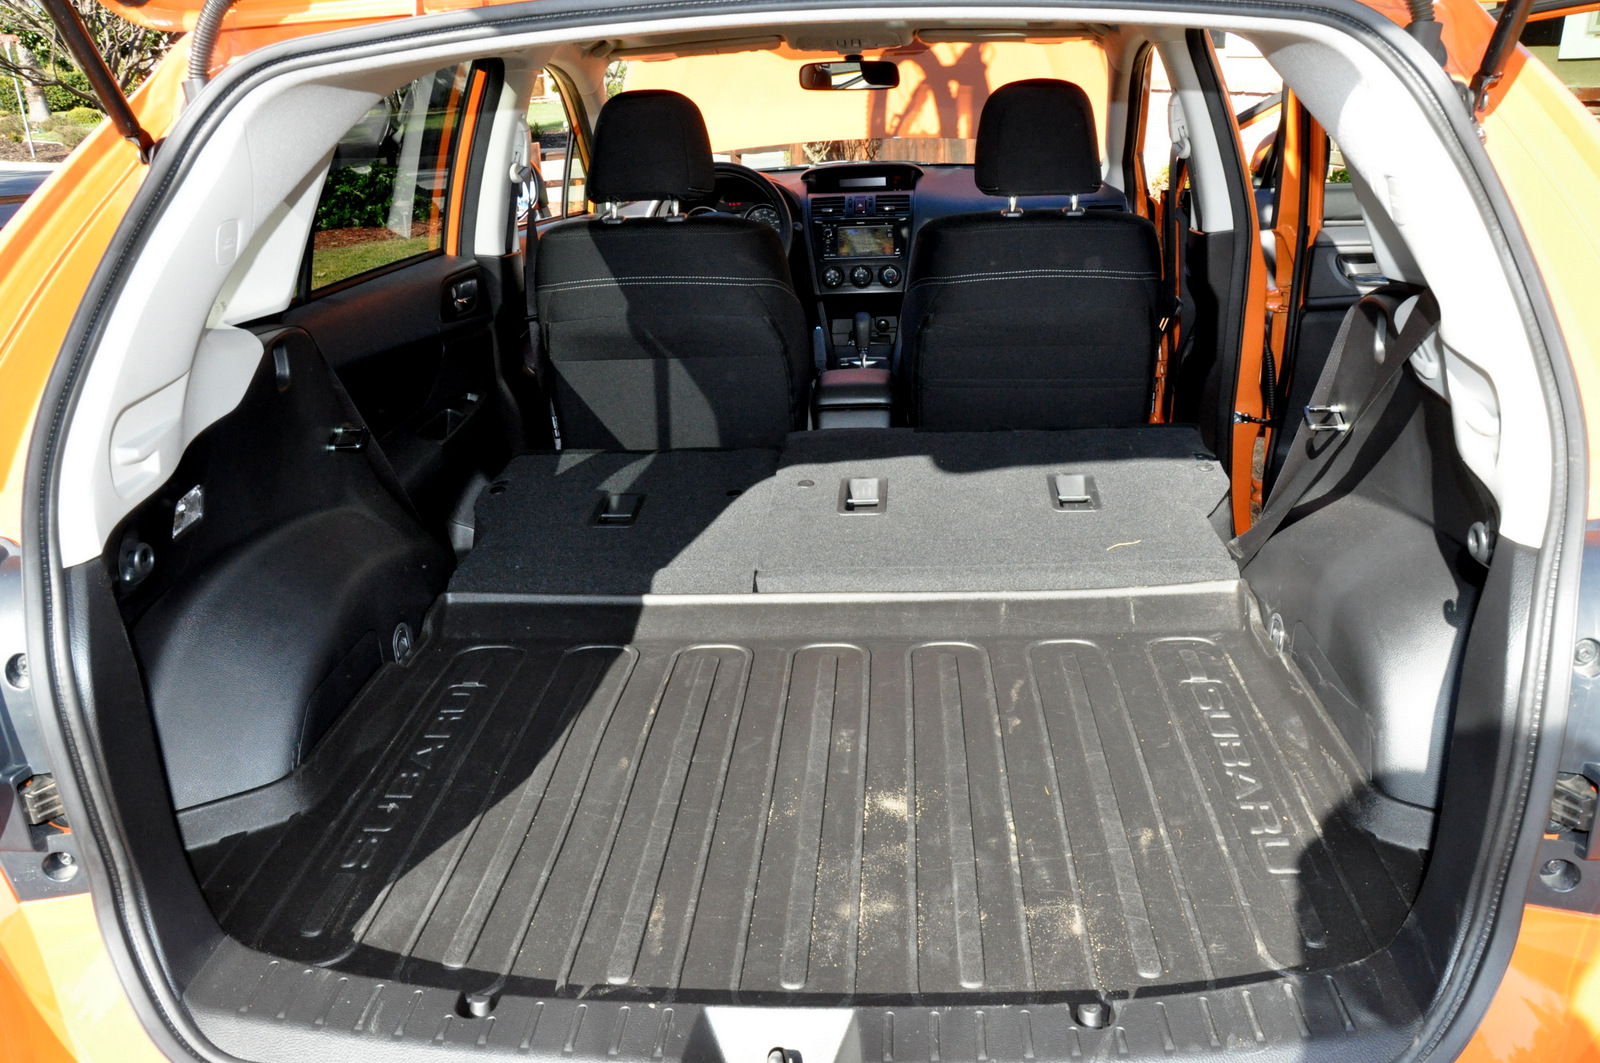 Subaru XV Crosstrek rear cargo area